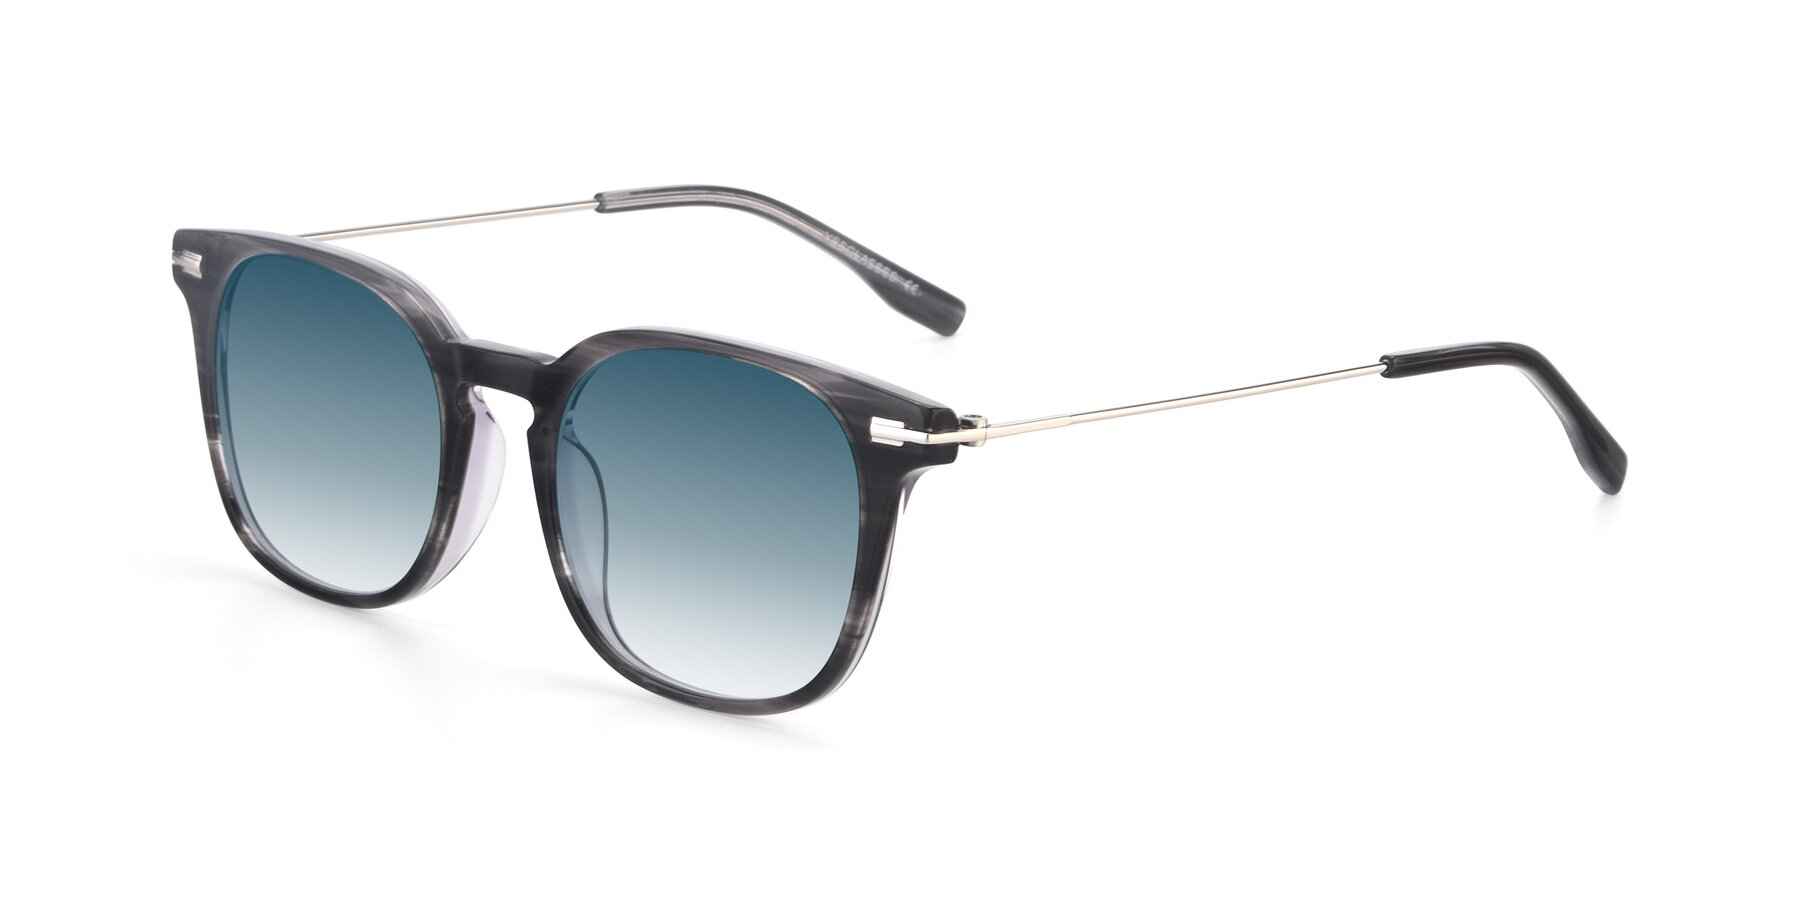 Angle of 17711 in Grey with Blue Gradient Lenses